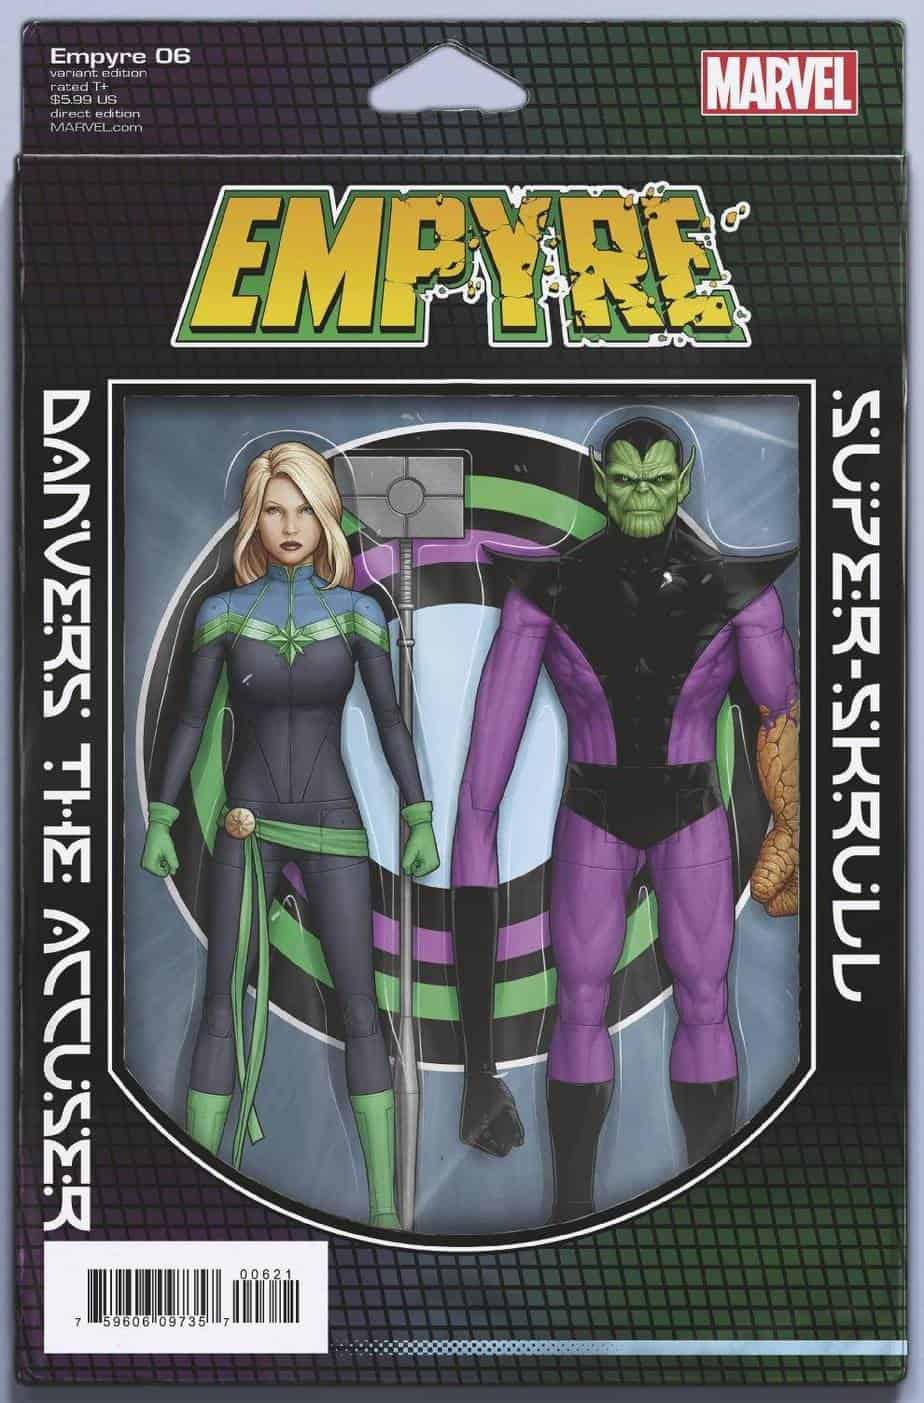 EMPYRE #6 - Cover G